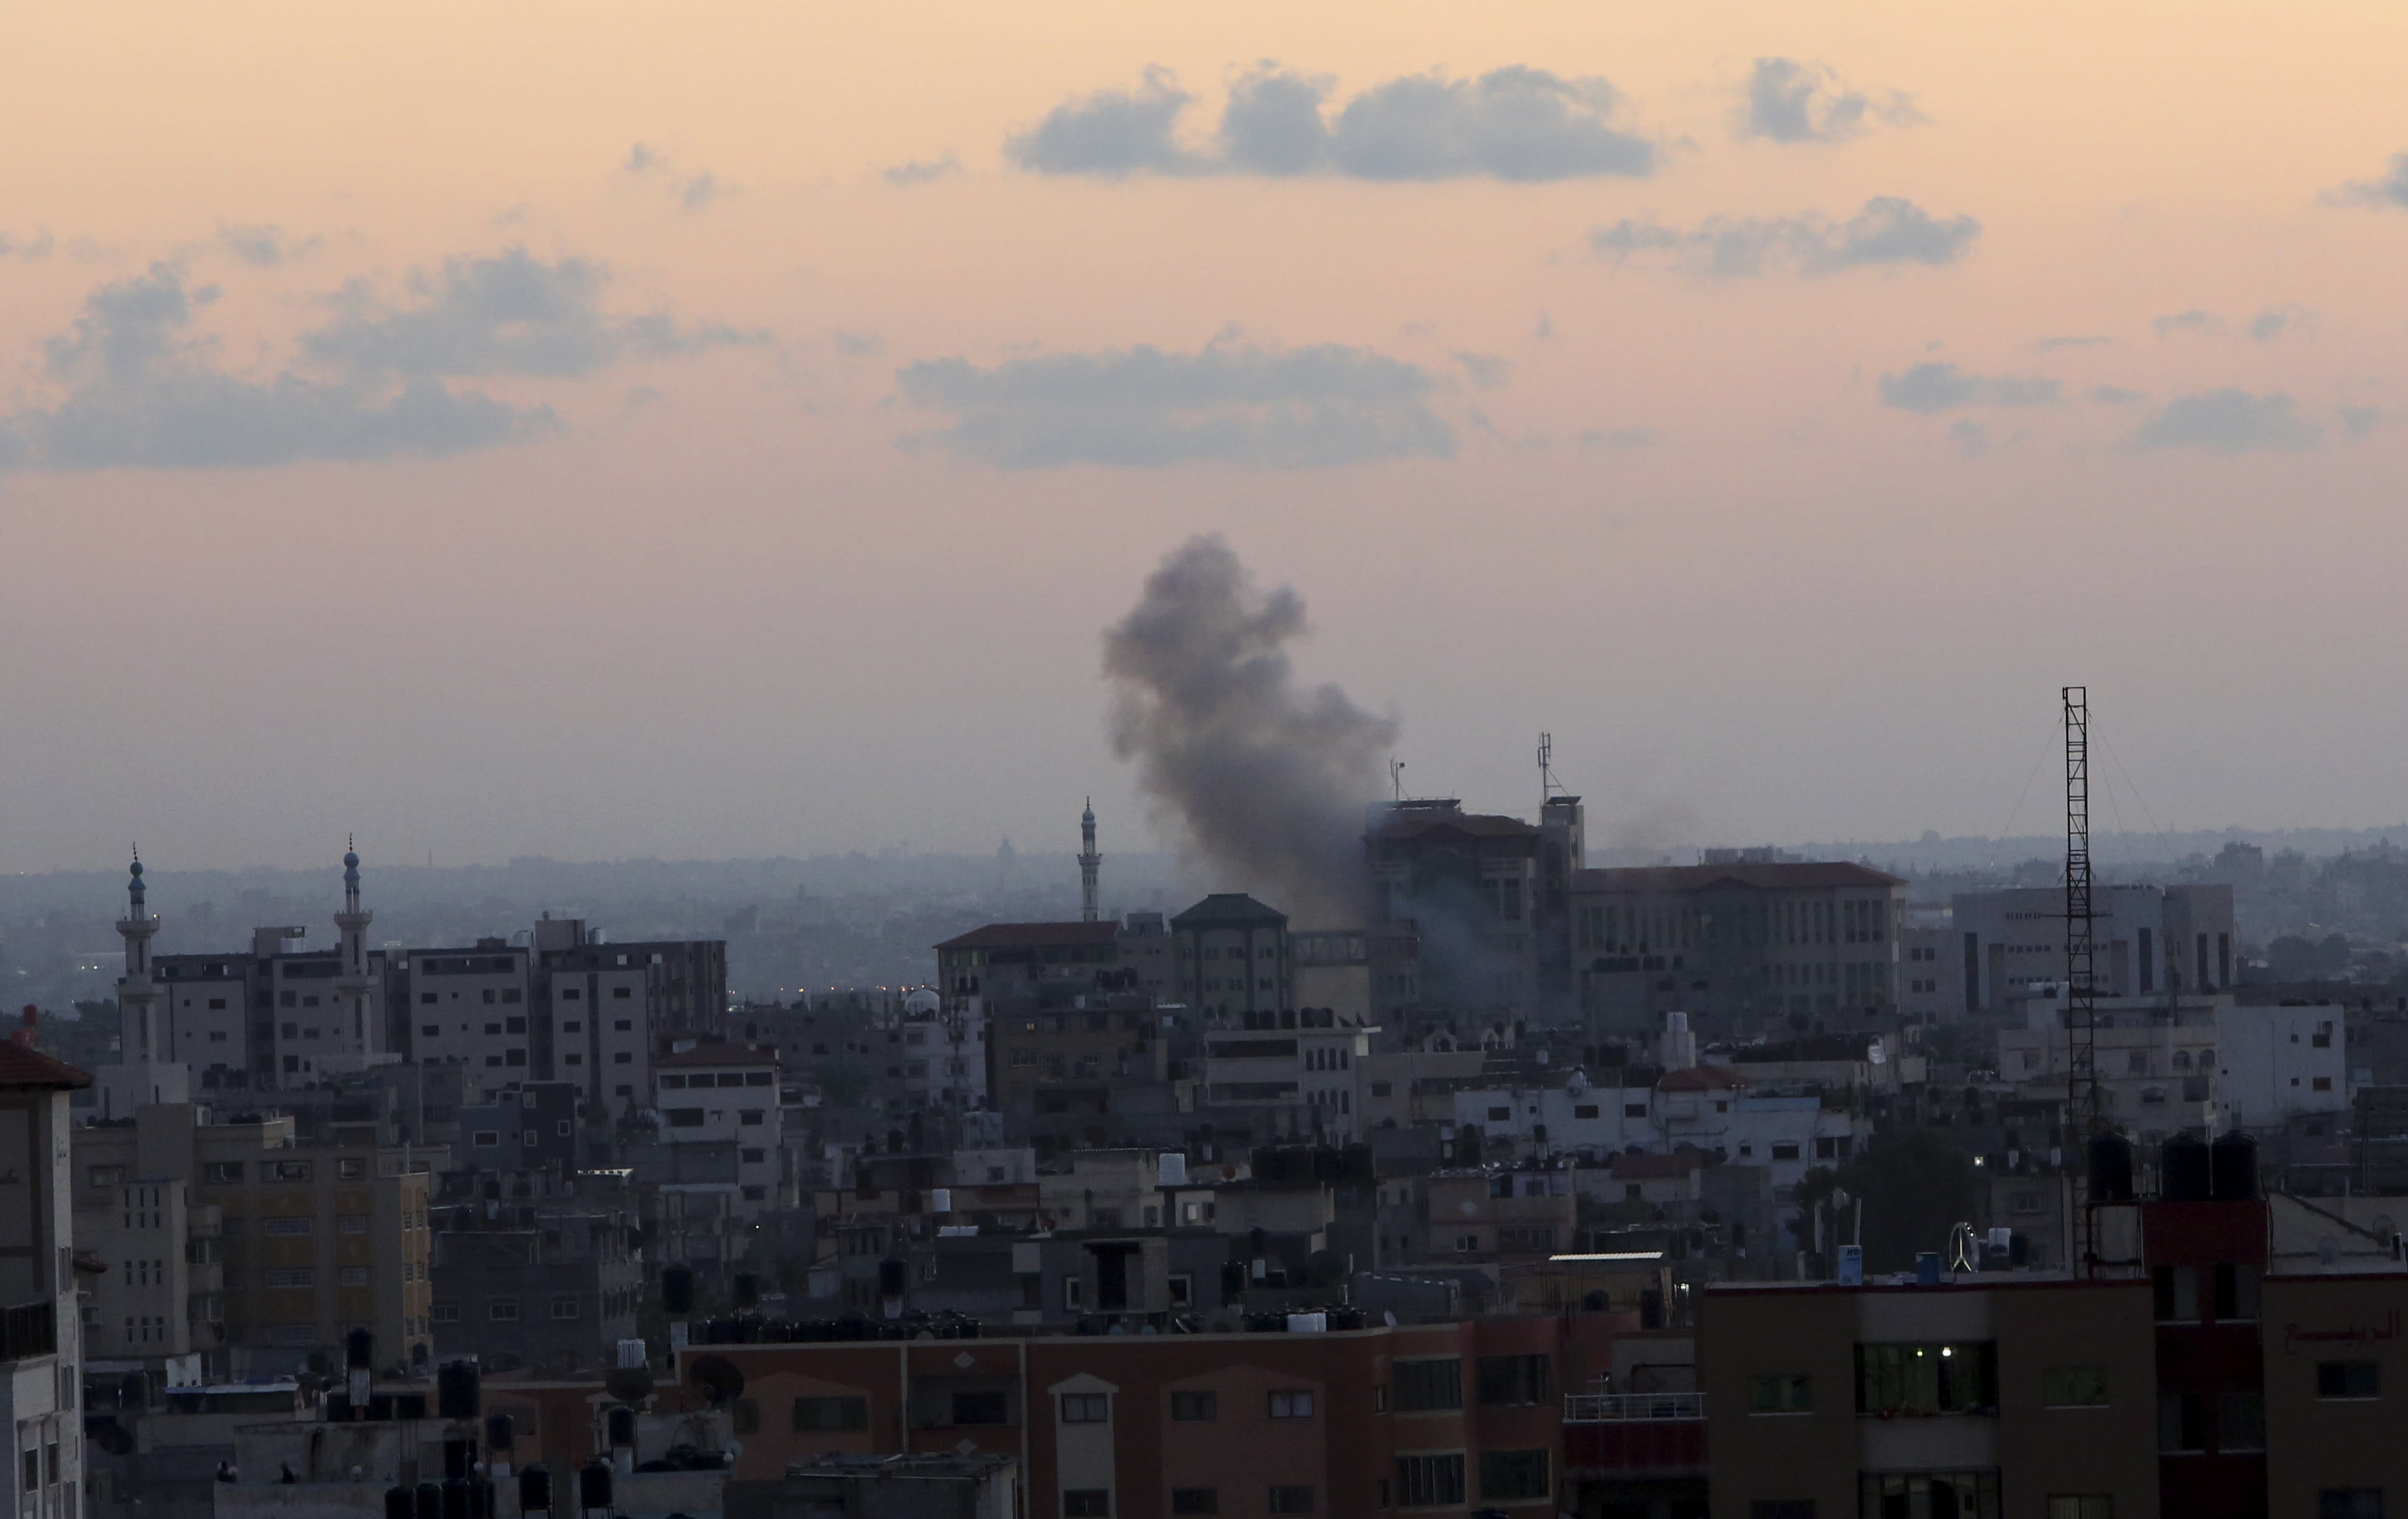 Smoke rises following Israeli strikes on Gaza City, Monday, Nov. 12, 2018. Palestinian militants on Monday fired dozens of rockets and mortar shells into southern Israel, critically wounding an Israeli teen, in an intense barrage of projectiles aimed at seeking revenge for a deadly Israeli military incursion late Sunday. The Israeli military responded by dispatching fighter jets to strike throughout the Gaza Strip. (AP Photo/Adel Hana) (AP Photo/Adel Hana)